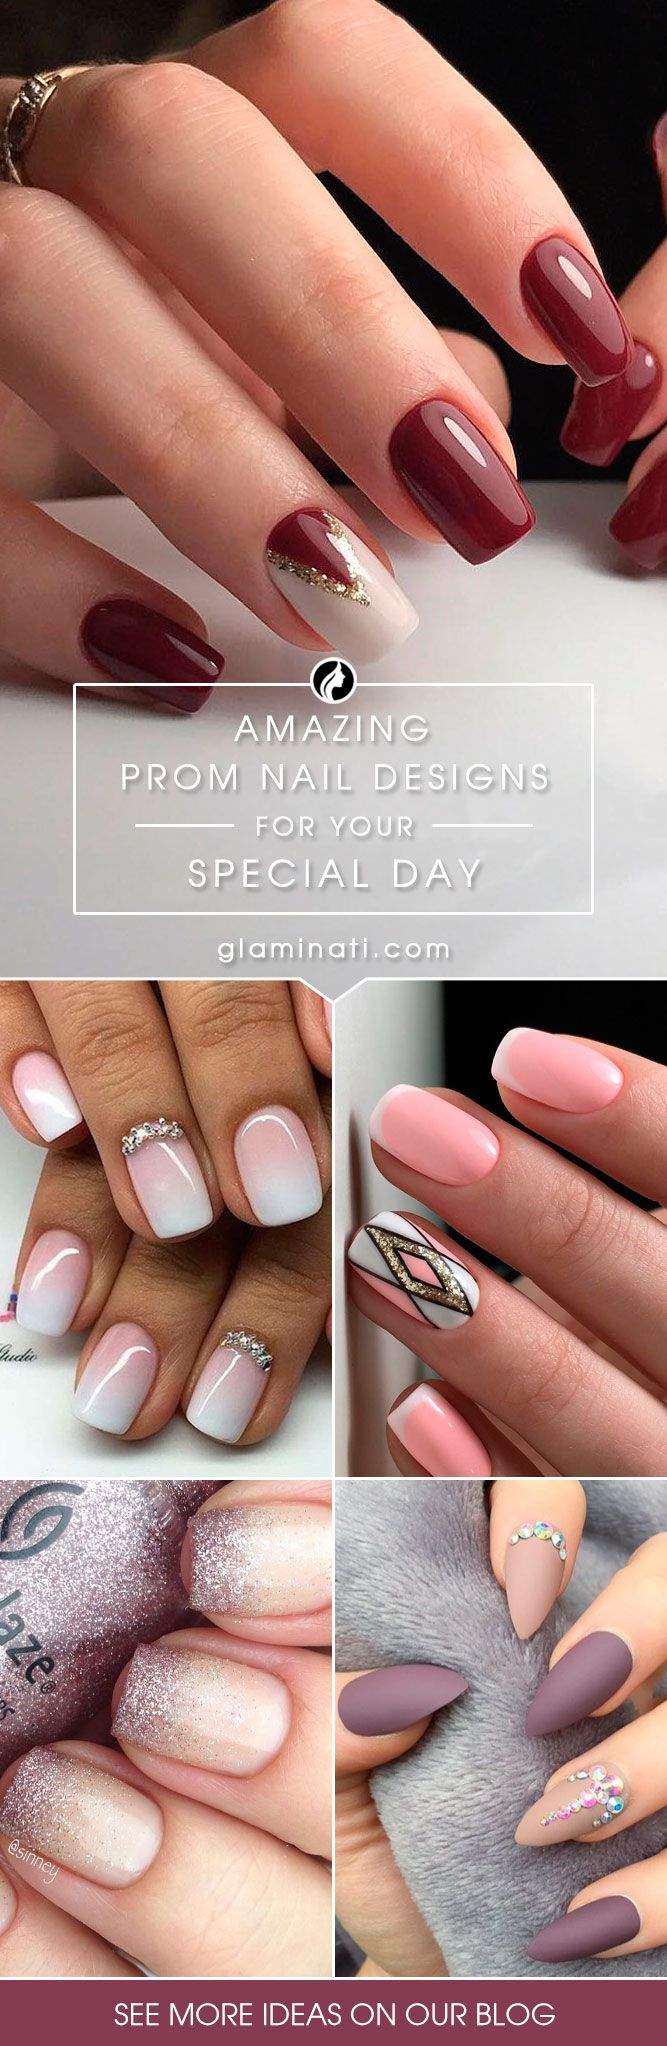 Fabulous designs for your prom nails are waiting for you here. See our collection, get inspired, and be ready to show them all who is the real beauty.